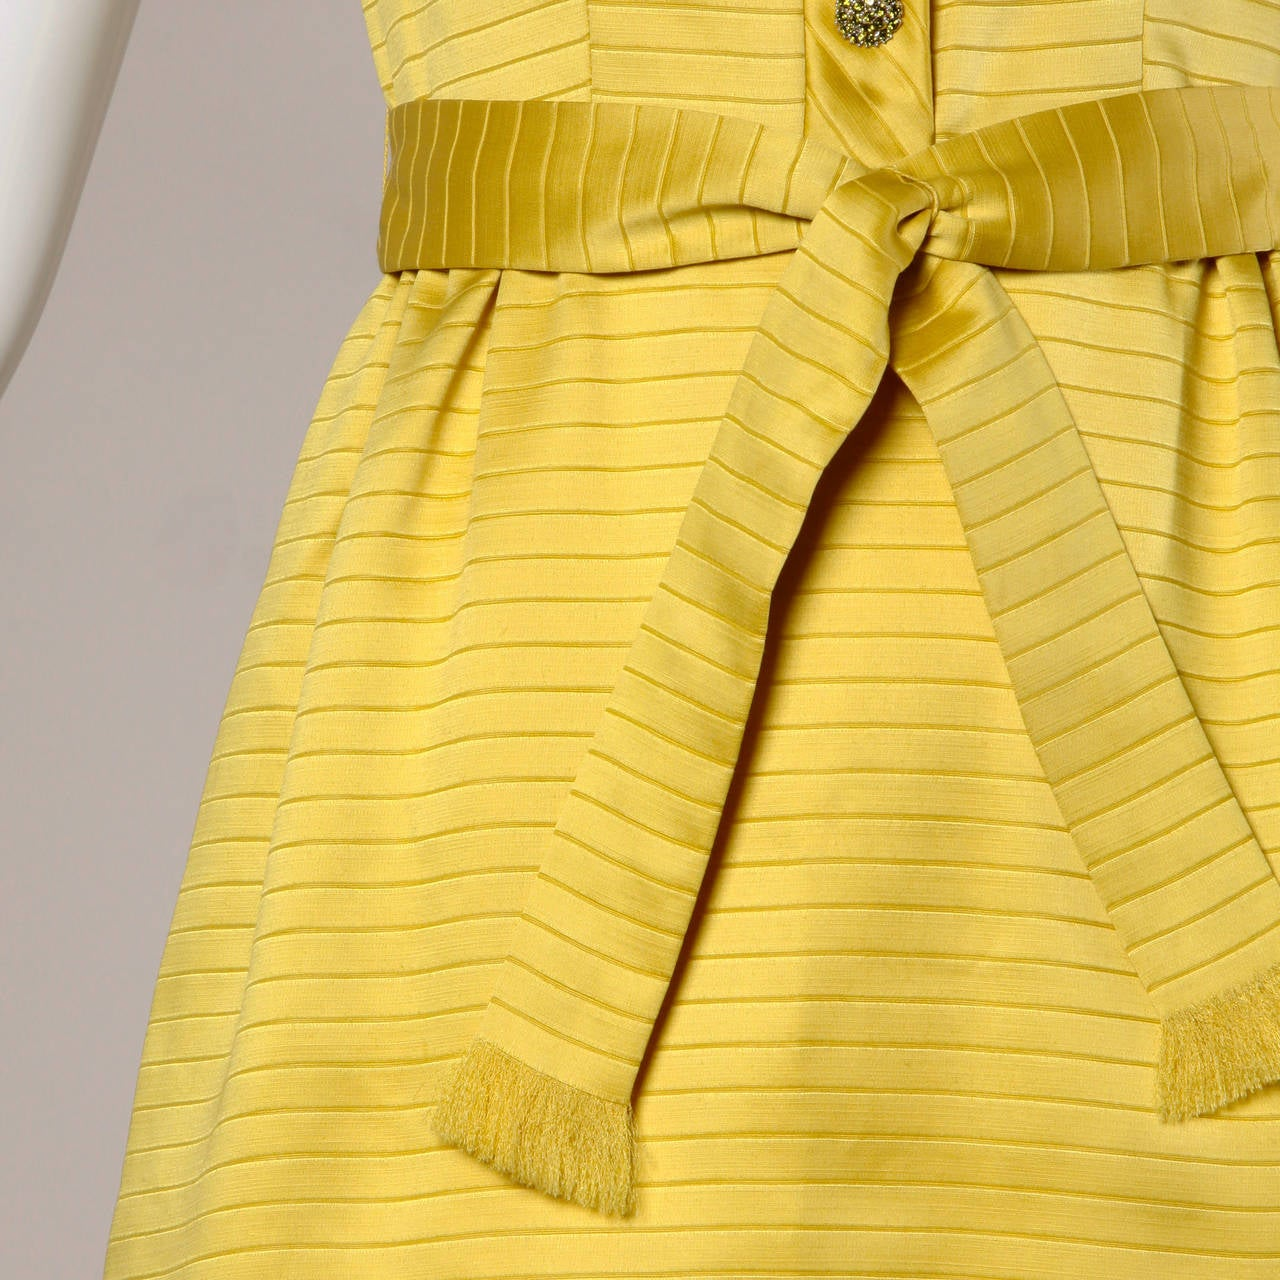 Darling 1960s Vintage Yellow Mini Dress with Rhinestone Buttons In Excellent Condition For Sale In Sparks, NV